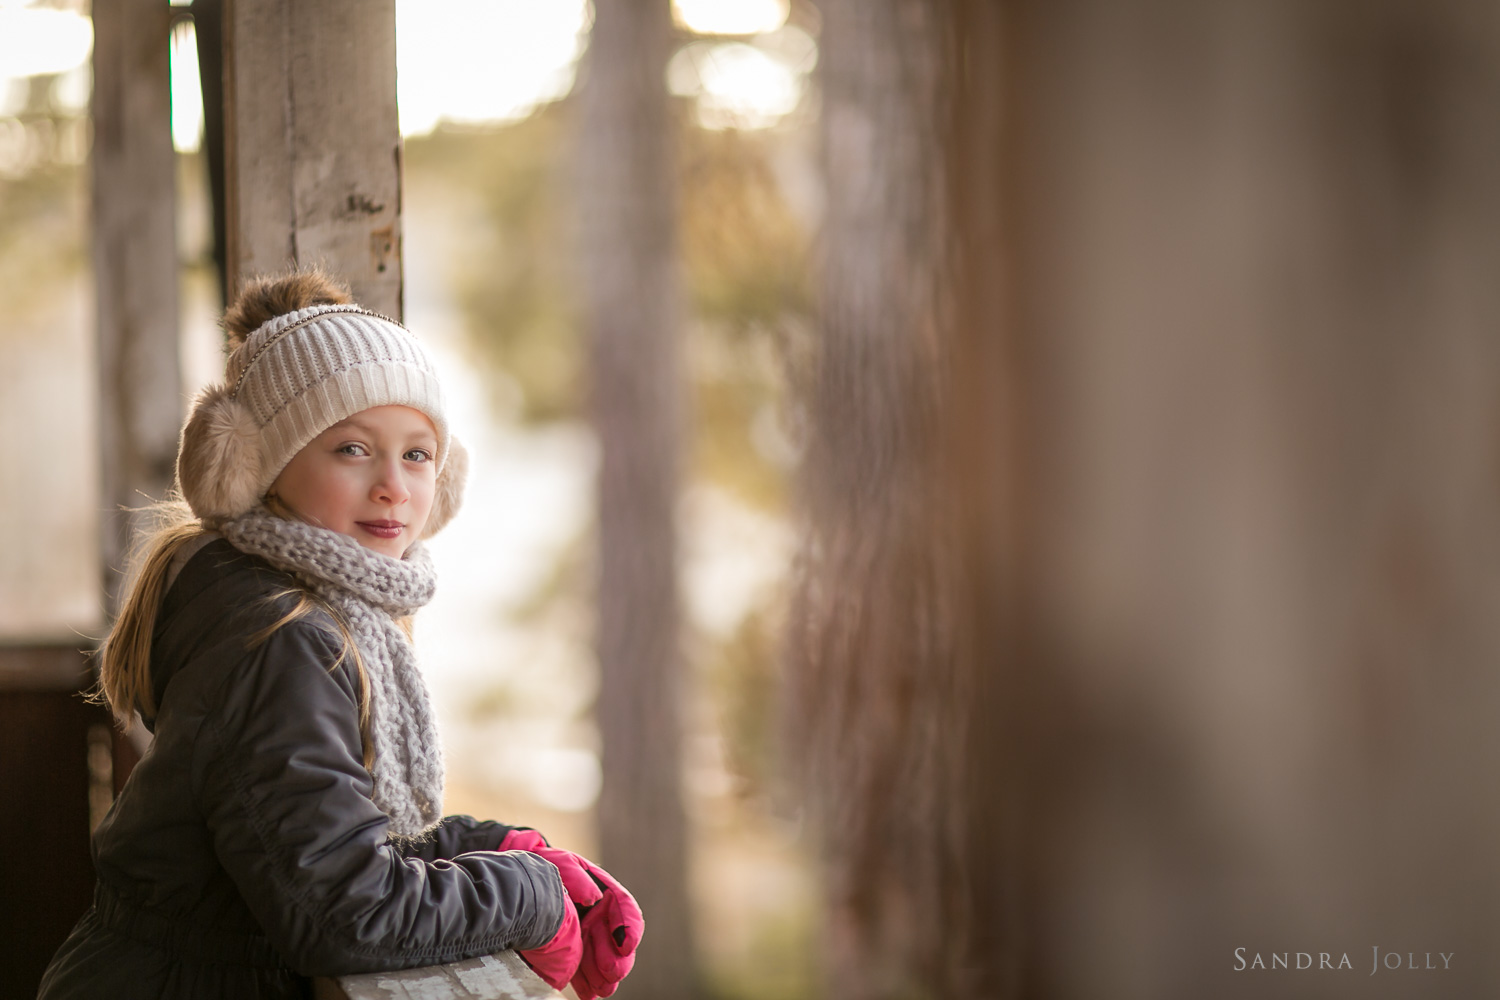 Image-of-a-girl-in-winter-clothes-by-Sandra-Jolly-barnfotograf.jpg